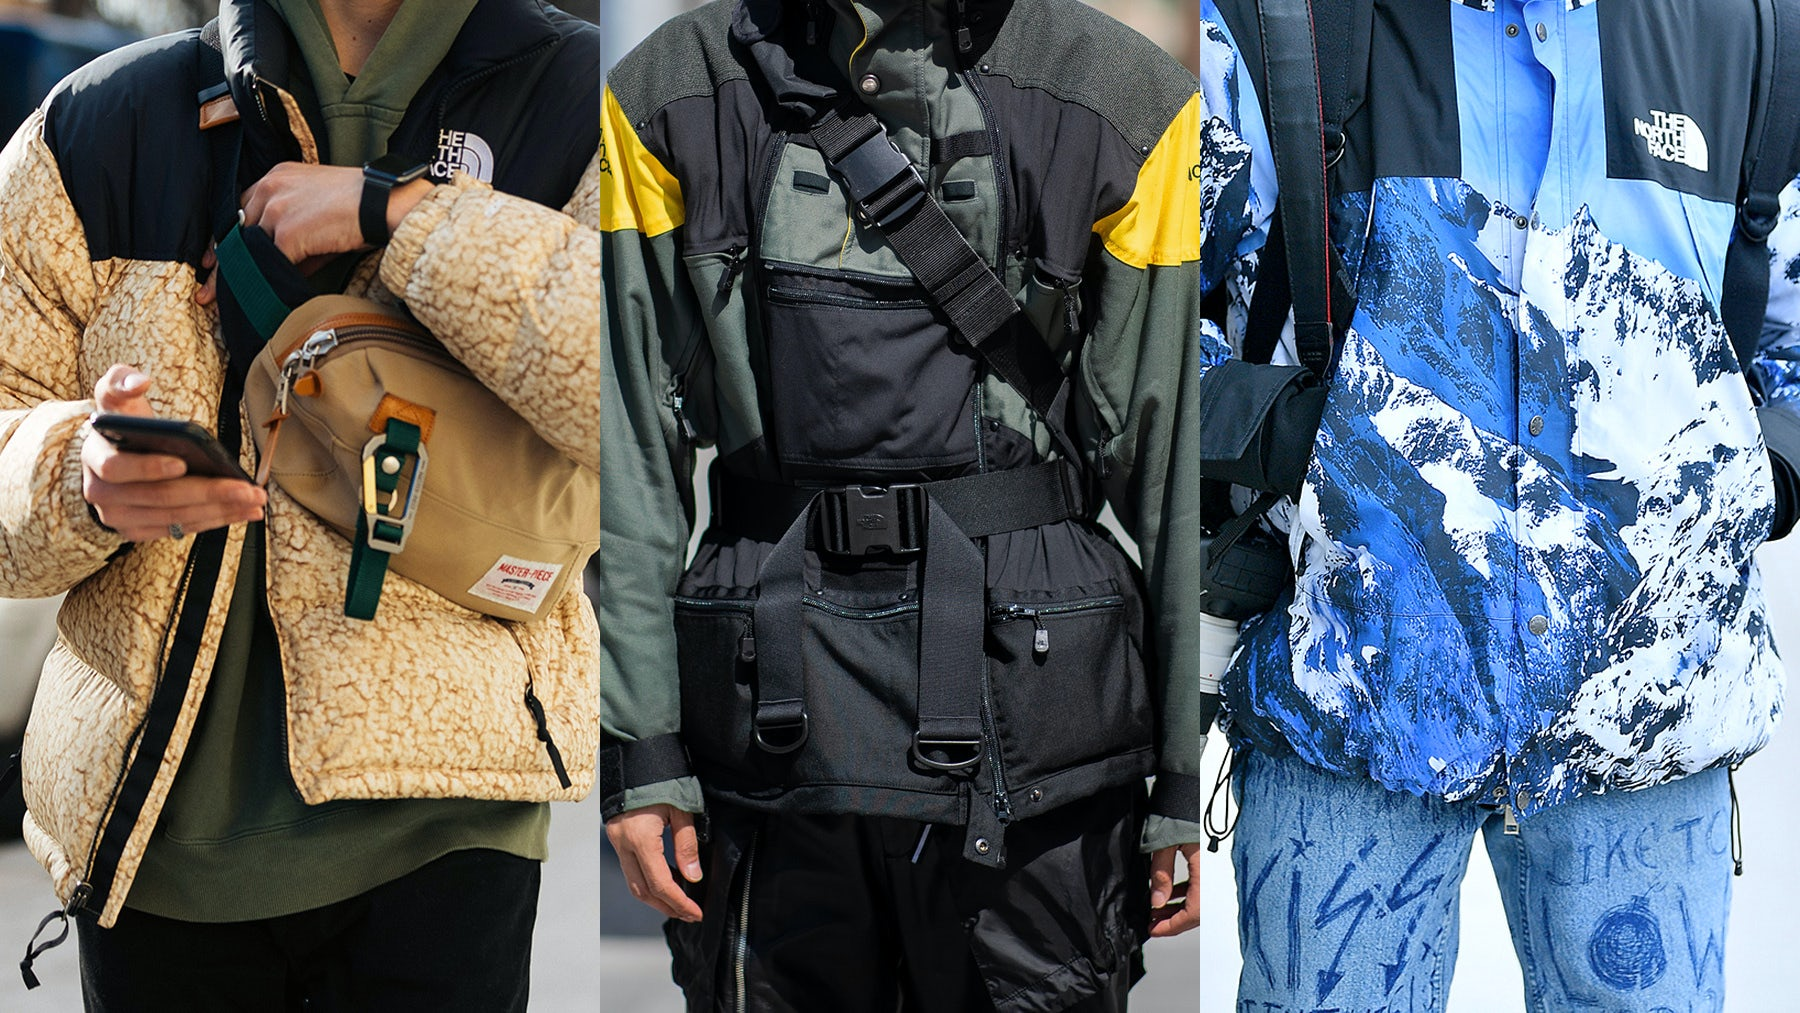 Gorpcore has already taken over mainstream fashion, raising questions over its future growth potential. Getty Images